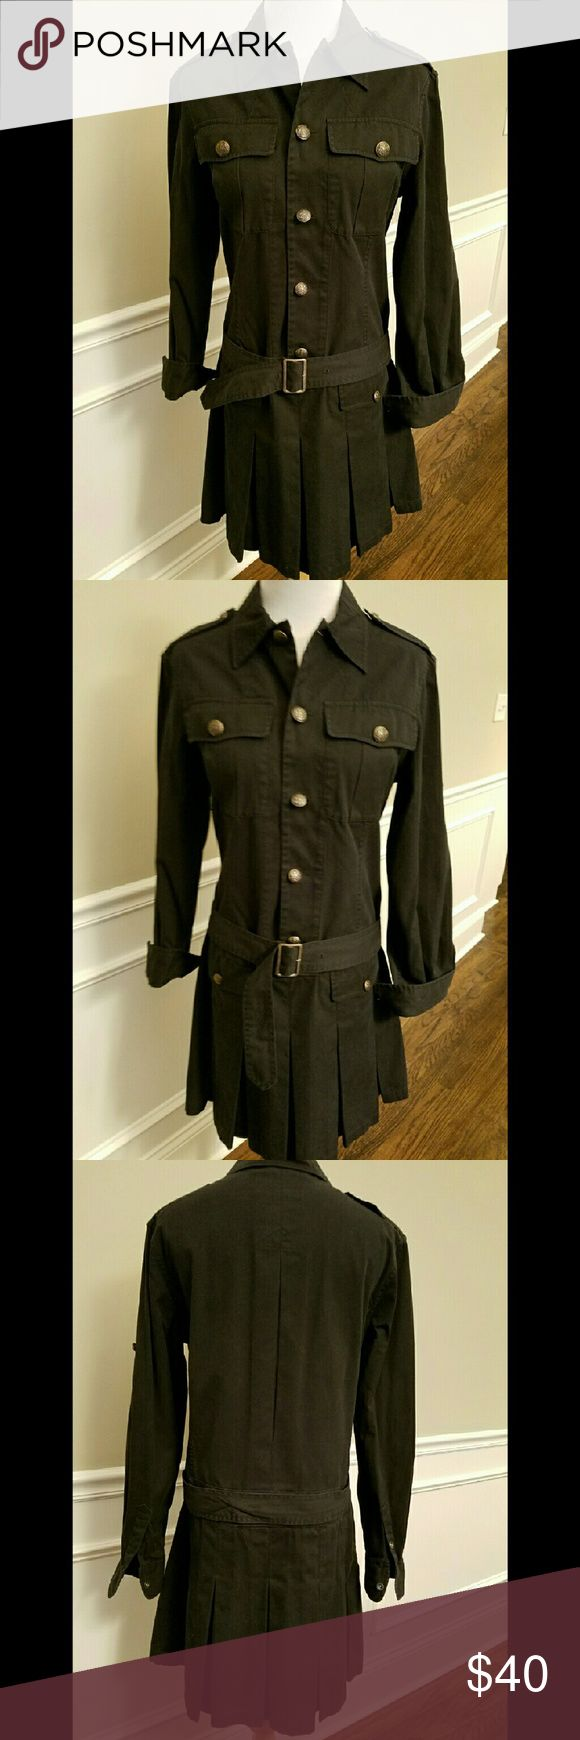 """Black Ralph Lauren Military Style Cotton Dress Black cotton button front dress from Ralph Lauren Rugby in size 8. Brass buttons on front and sleeves, optional wide belt with brass buckle (shown with and without in photos), two breast pockets and two pockets on skirt. Drop waist and pleated skirt. Measures 35"""" long and 18"""" across the bust. Absolutely stunning and in perfect condition. Ralph Lauren Dresses Midi"""